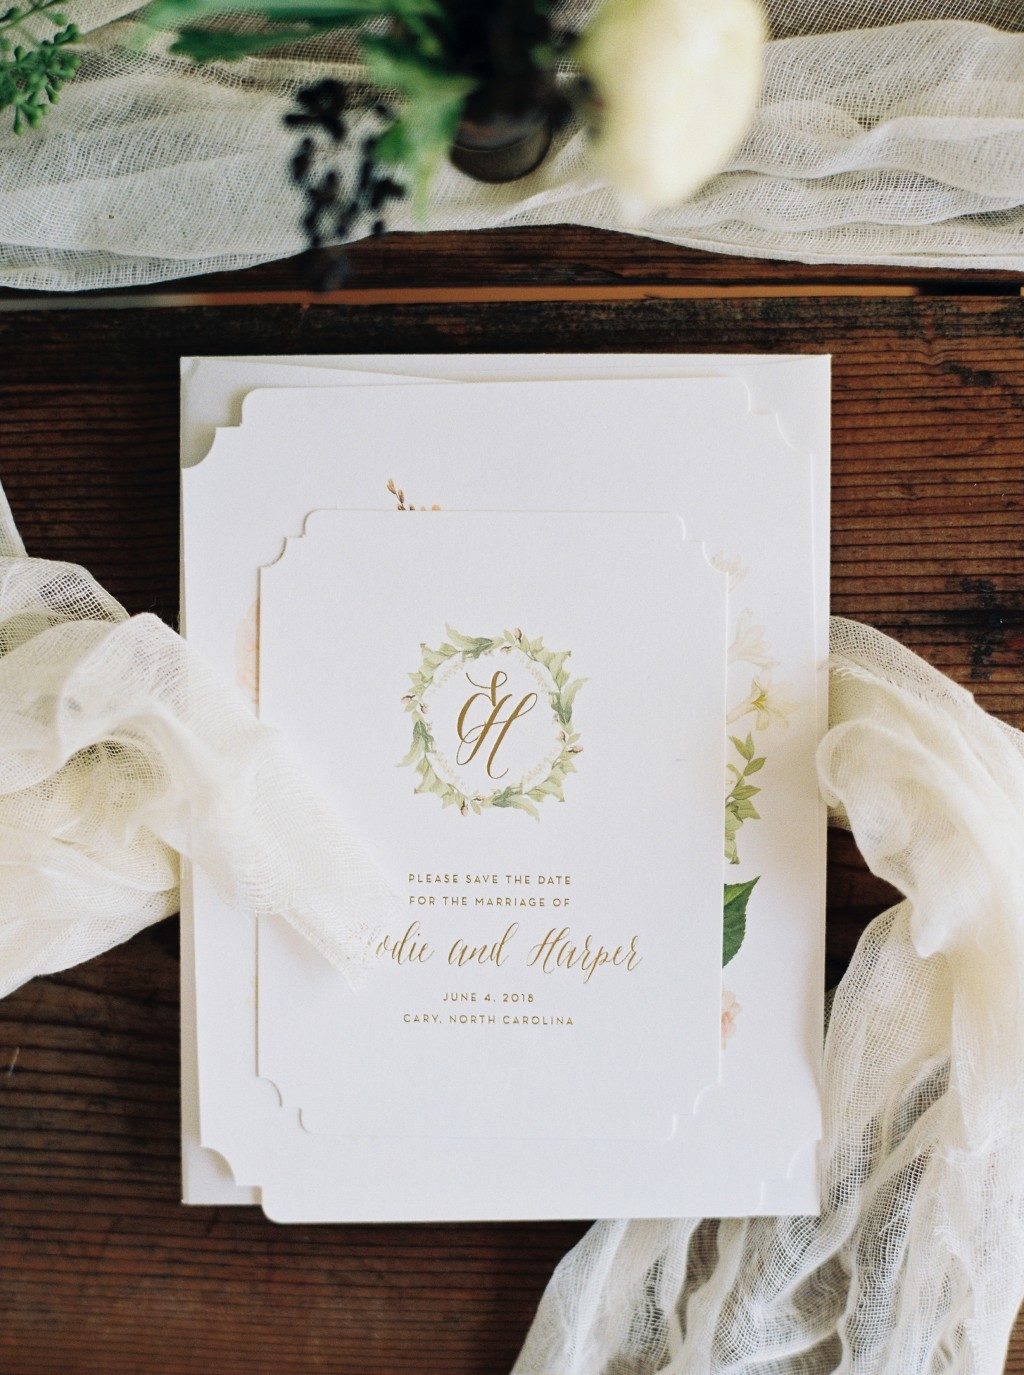 Josephine wedding invitations from Bella Figura